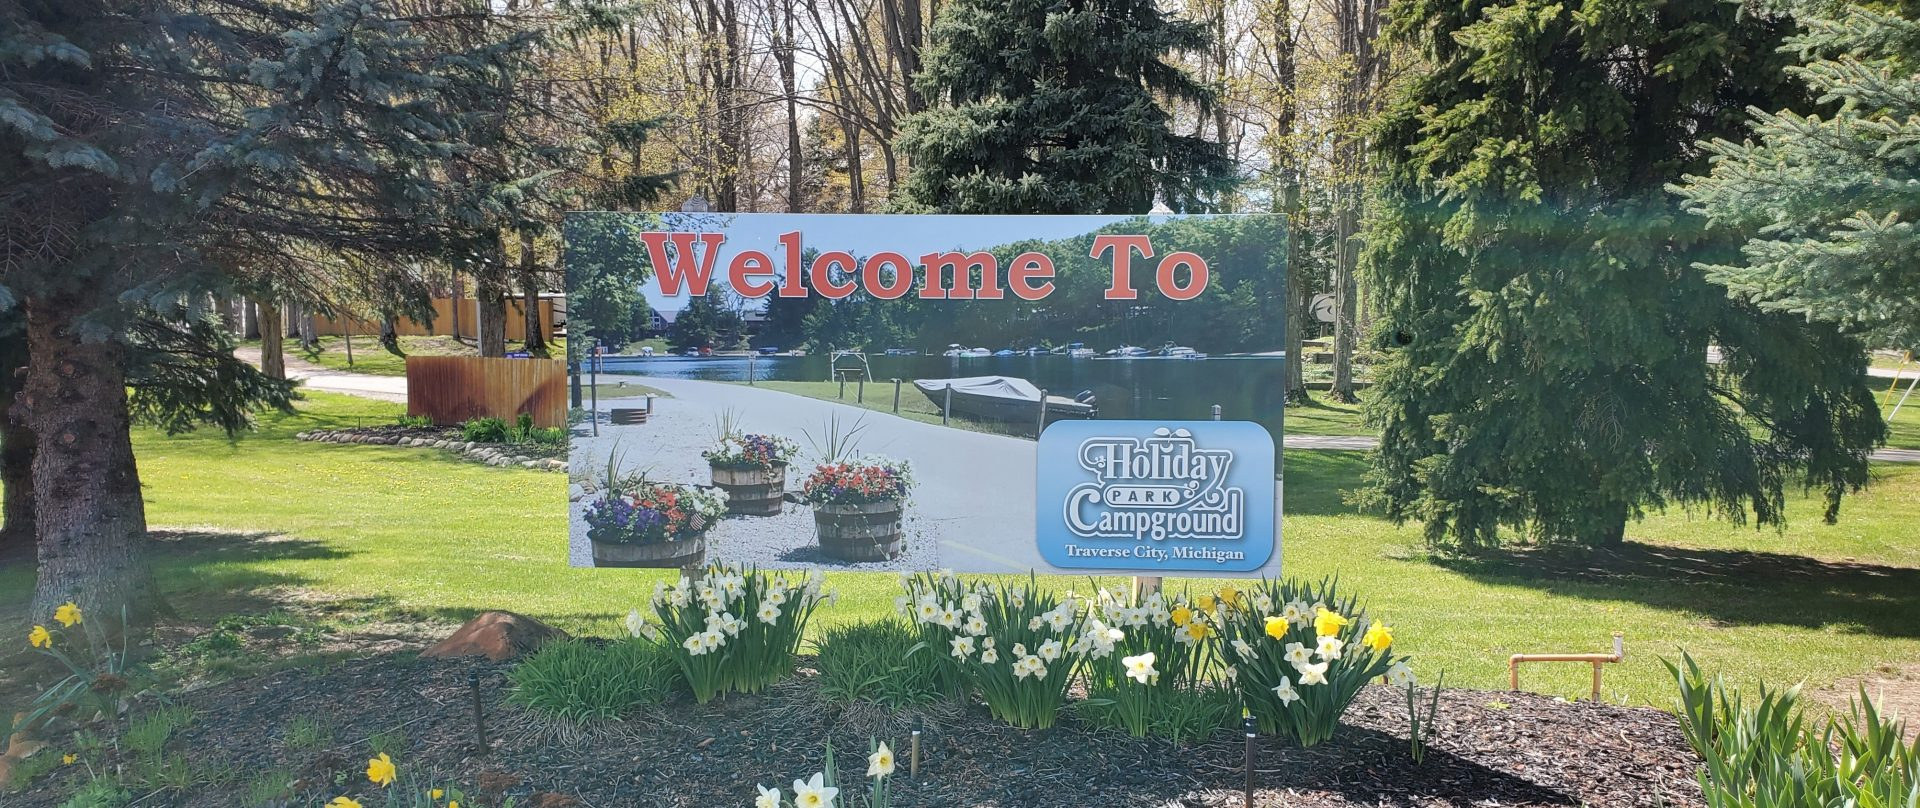 Welcome to Holiday Park Campground